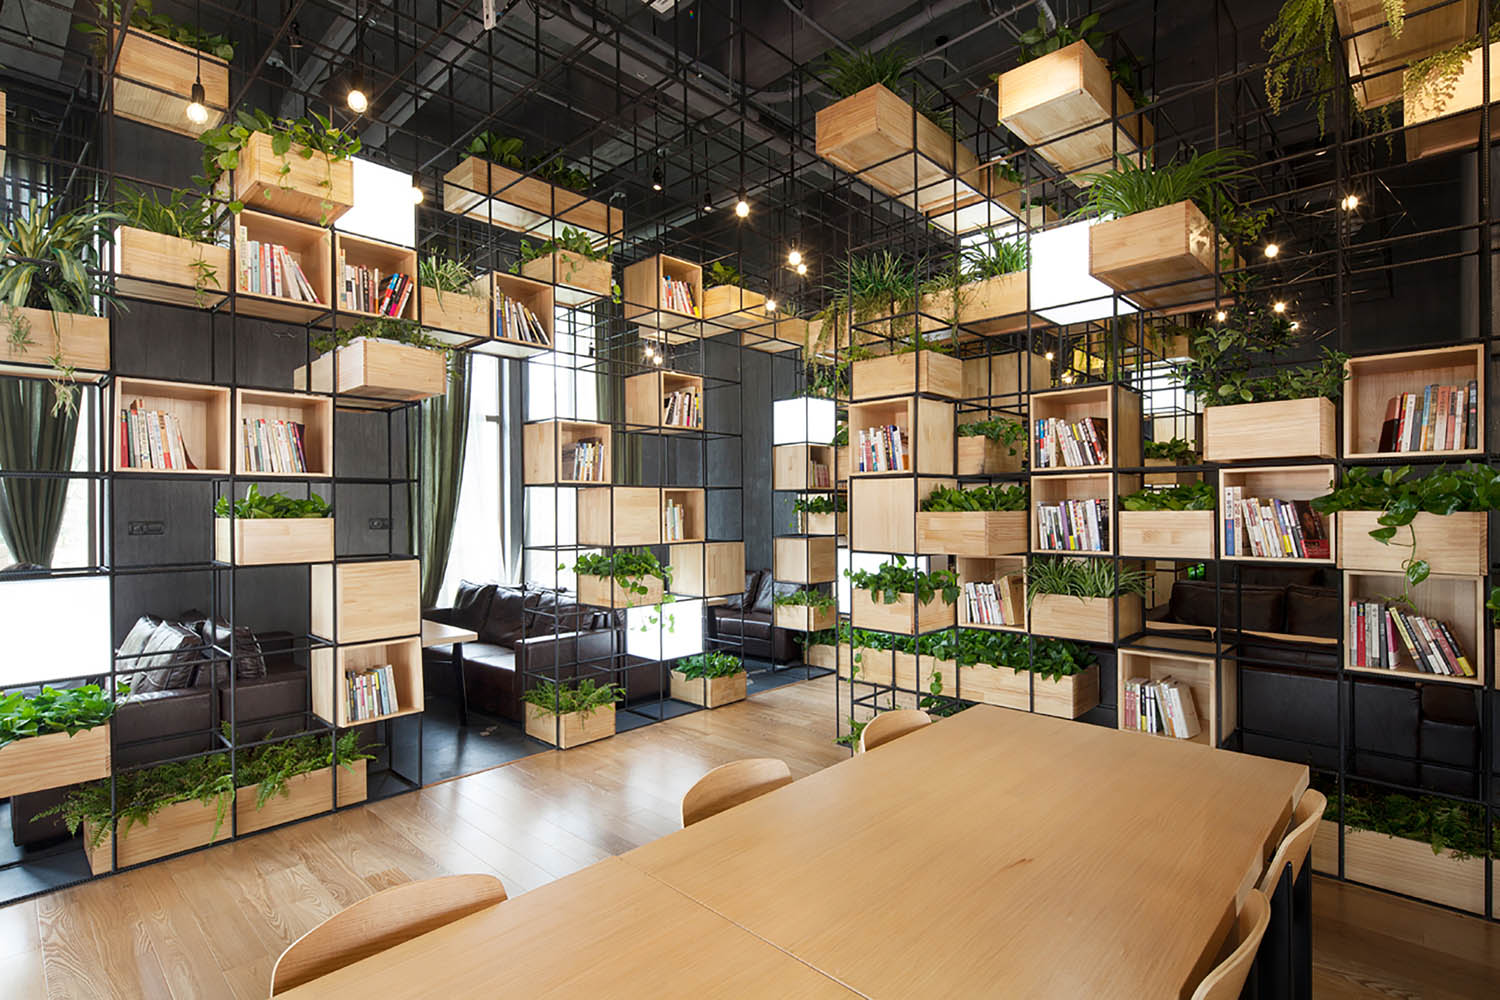 mm_Home Cafes fesign by Penda_06